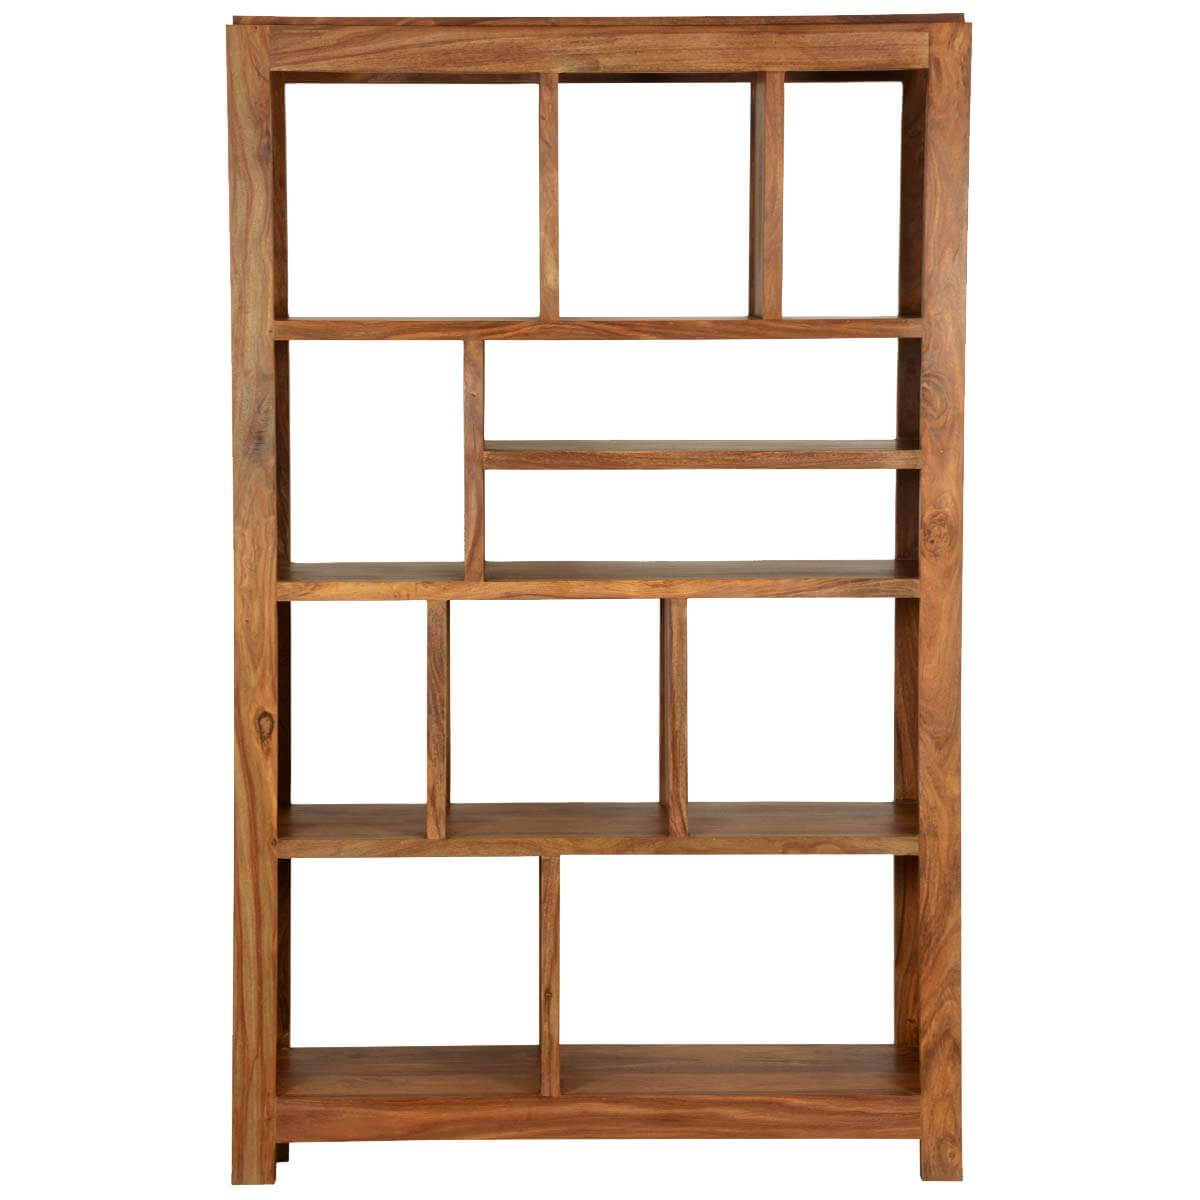 Cube Bookshelf Simply Modern Solid Wood 11 Section Display Rack Cube Bookcase